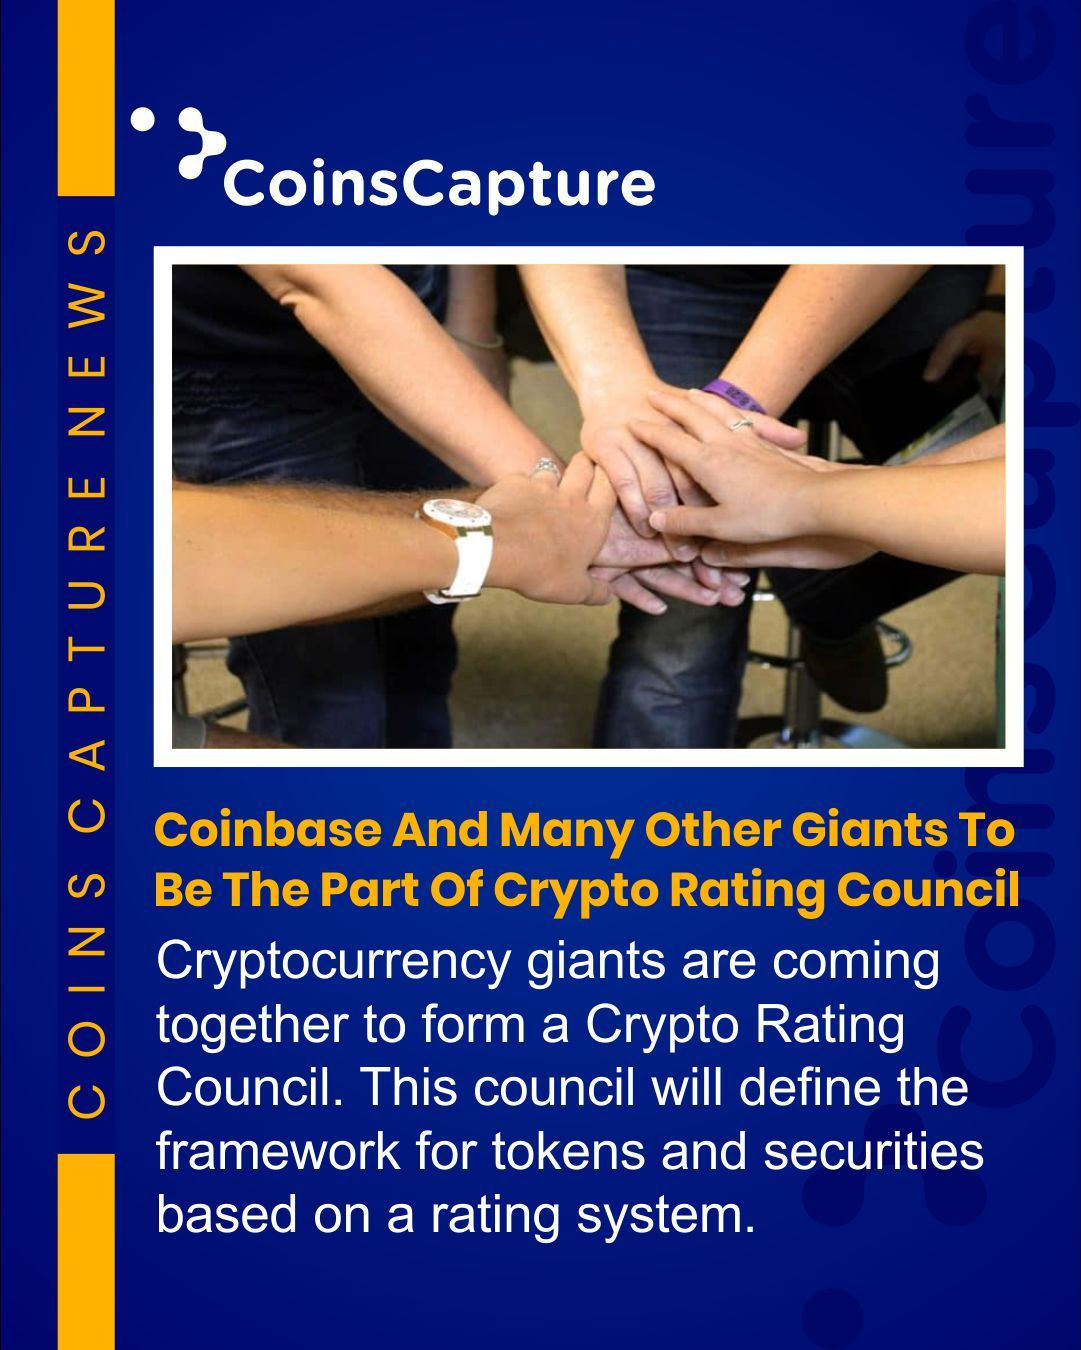 Coinbase And Many Other Giants To Be The Part Of Crypto